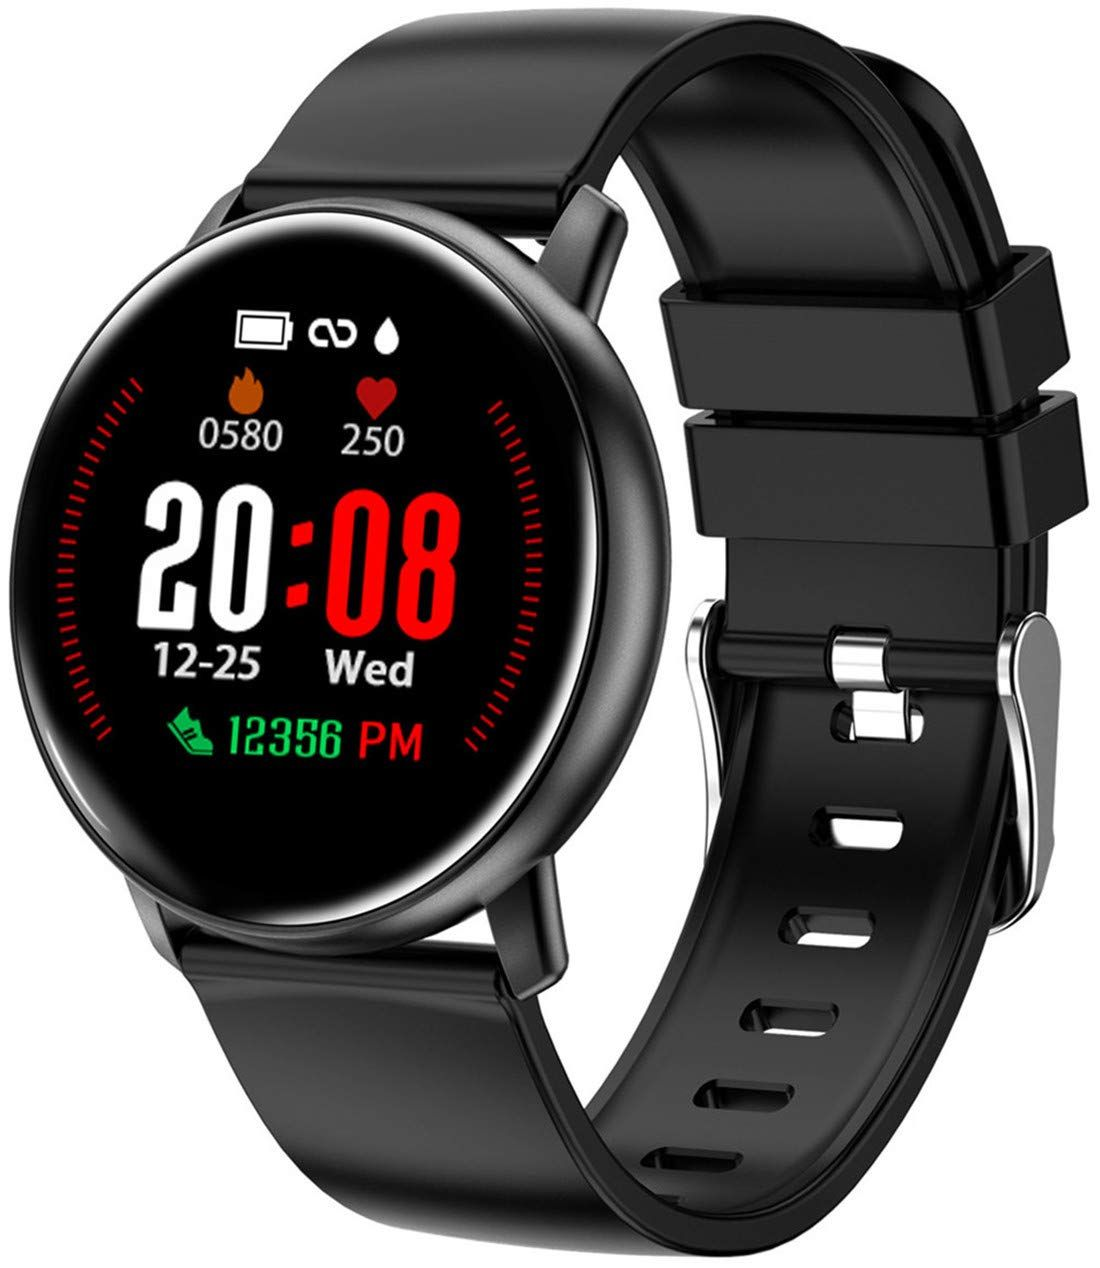 Off Sale Smart Watch for Android iOS Phones, Sport Fitness